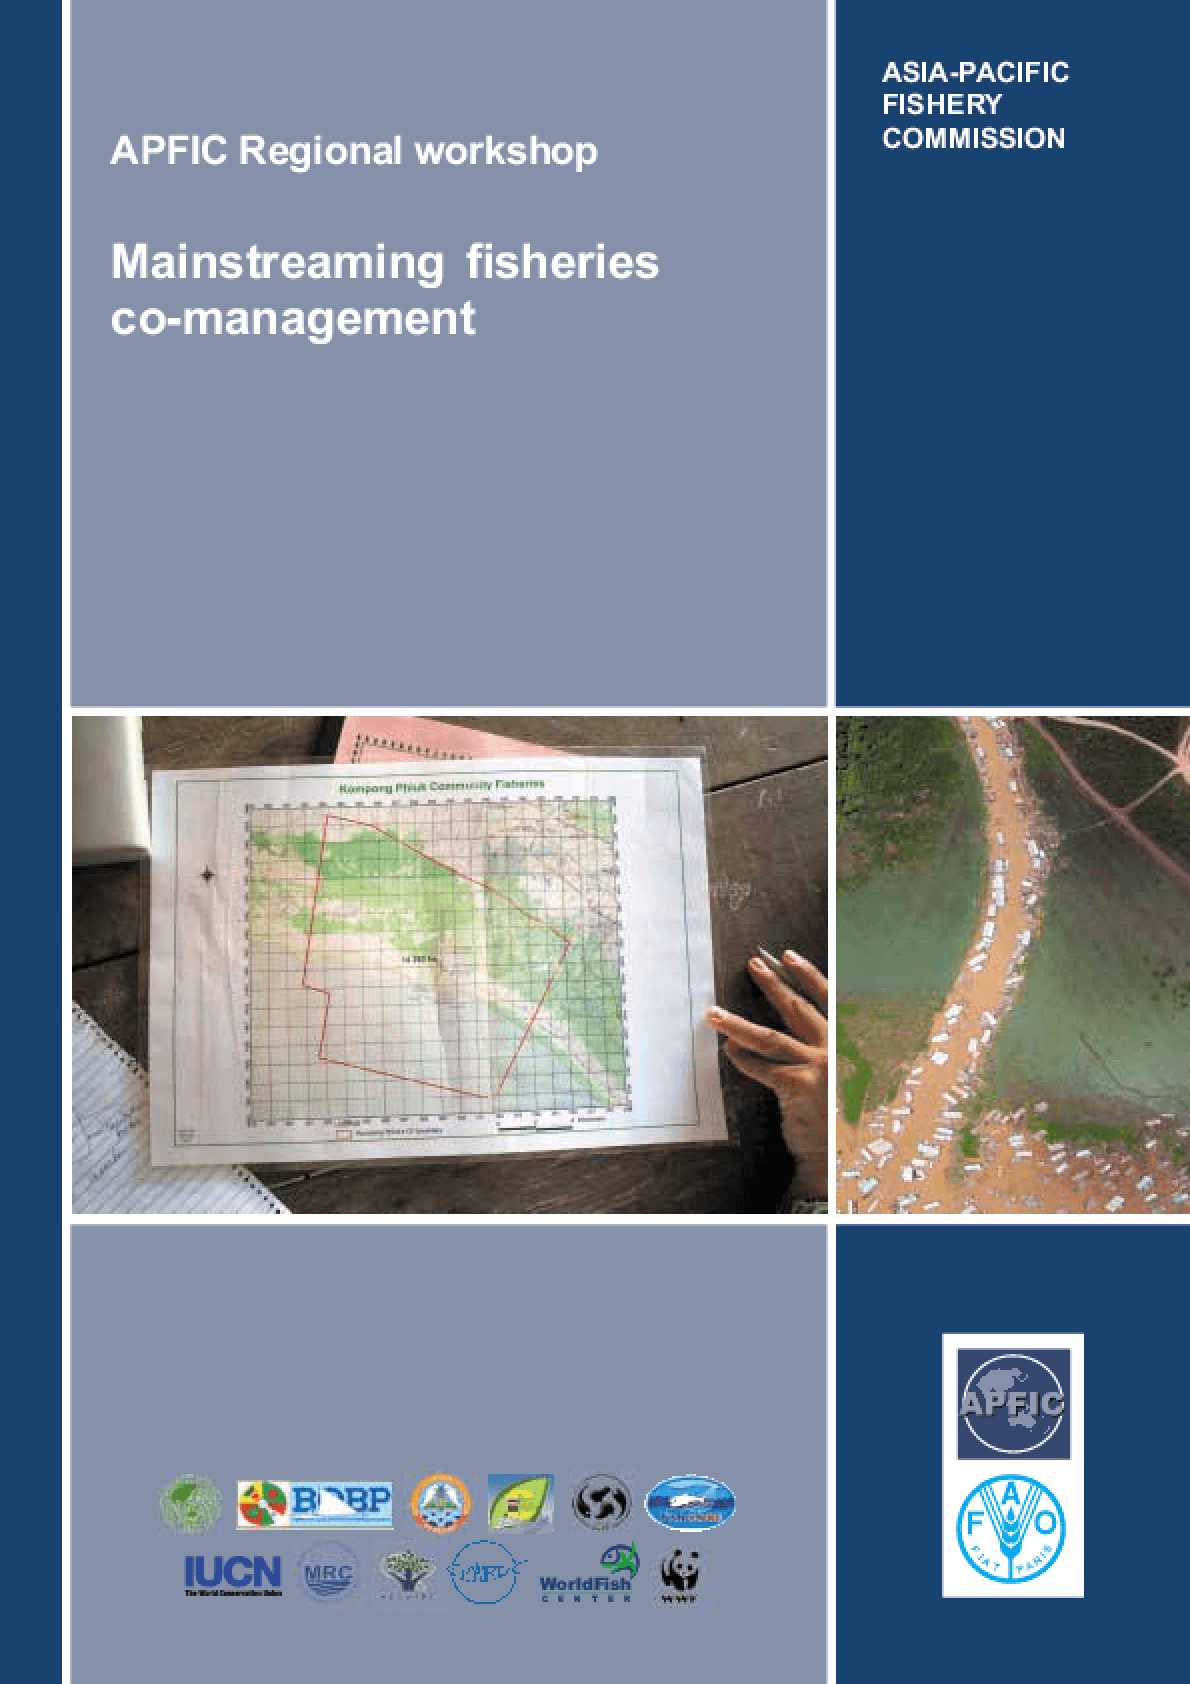 """APFIC Regional Workshop on """"Mainstreaming Fisheries Co-management"""""""